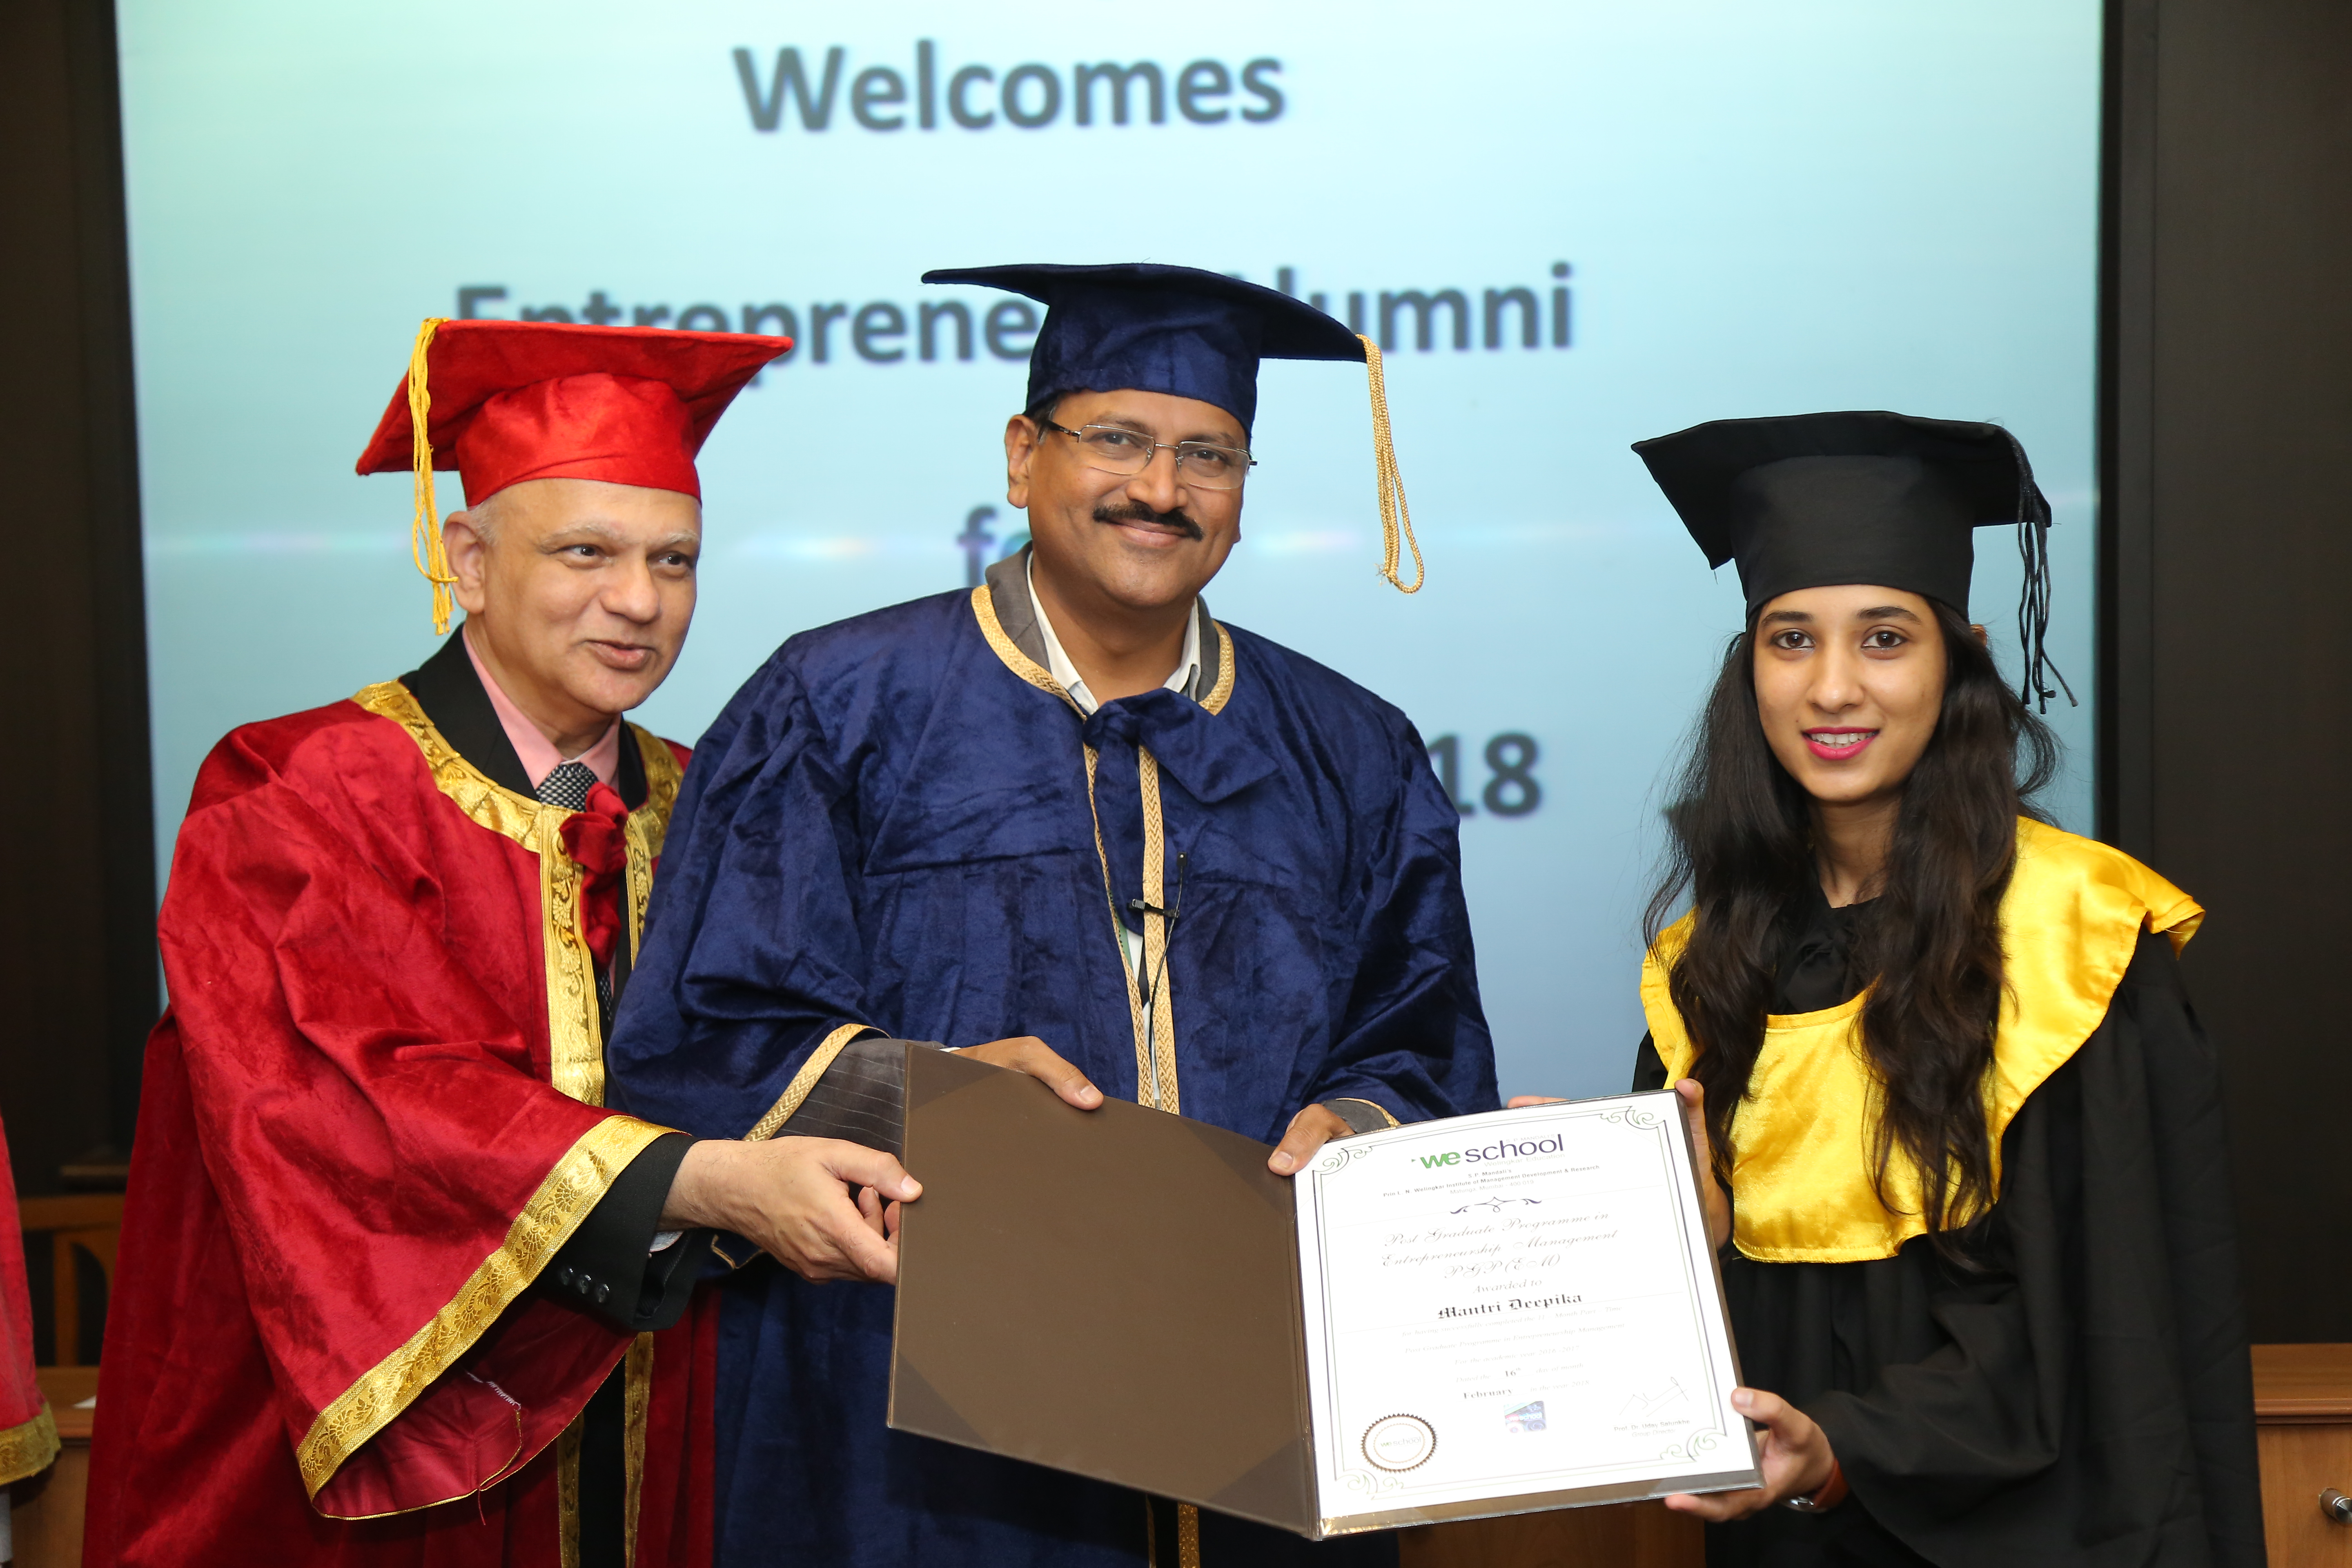 Entreprenuers @WeSchool awarded Convocation Certificates